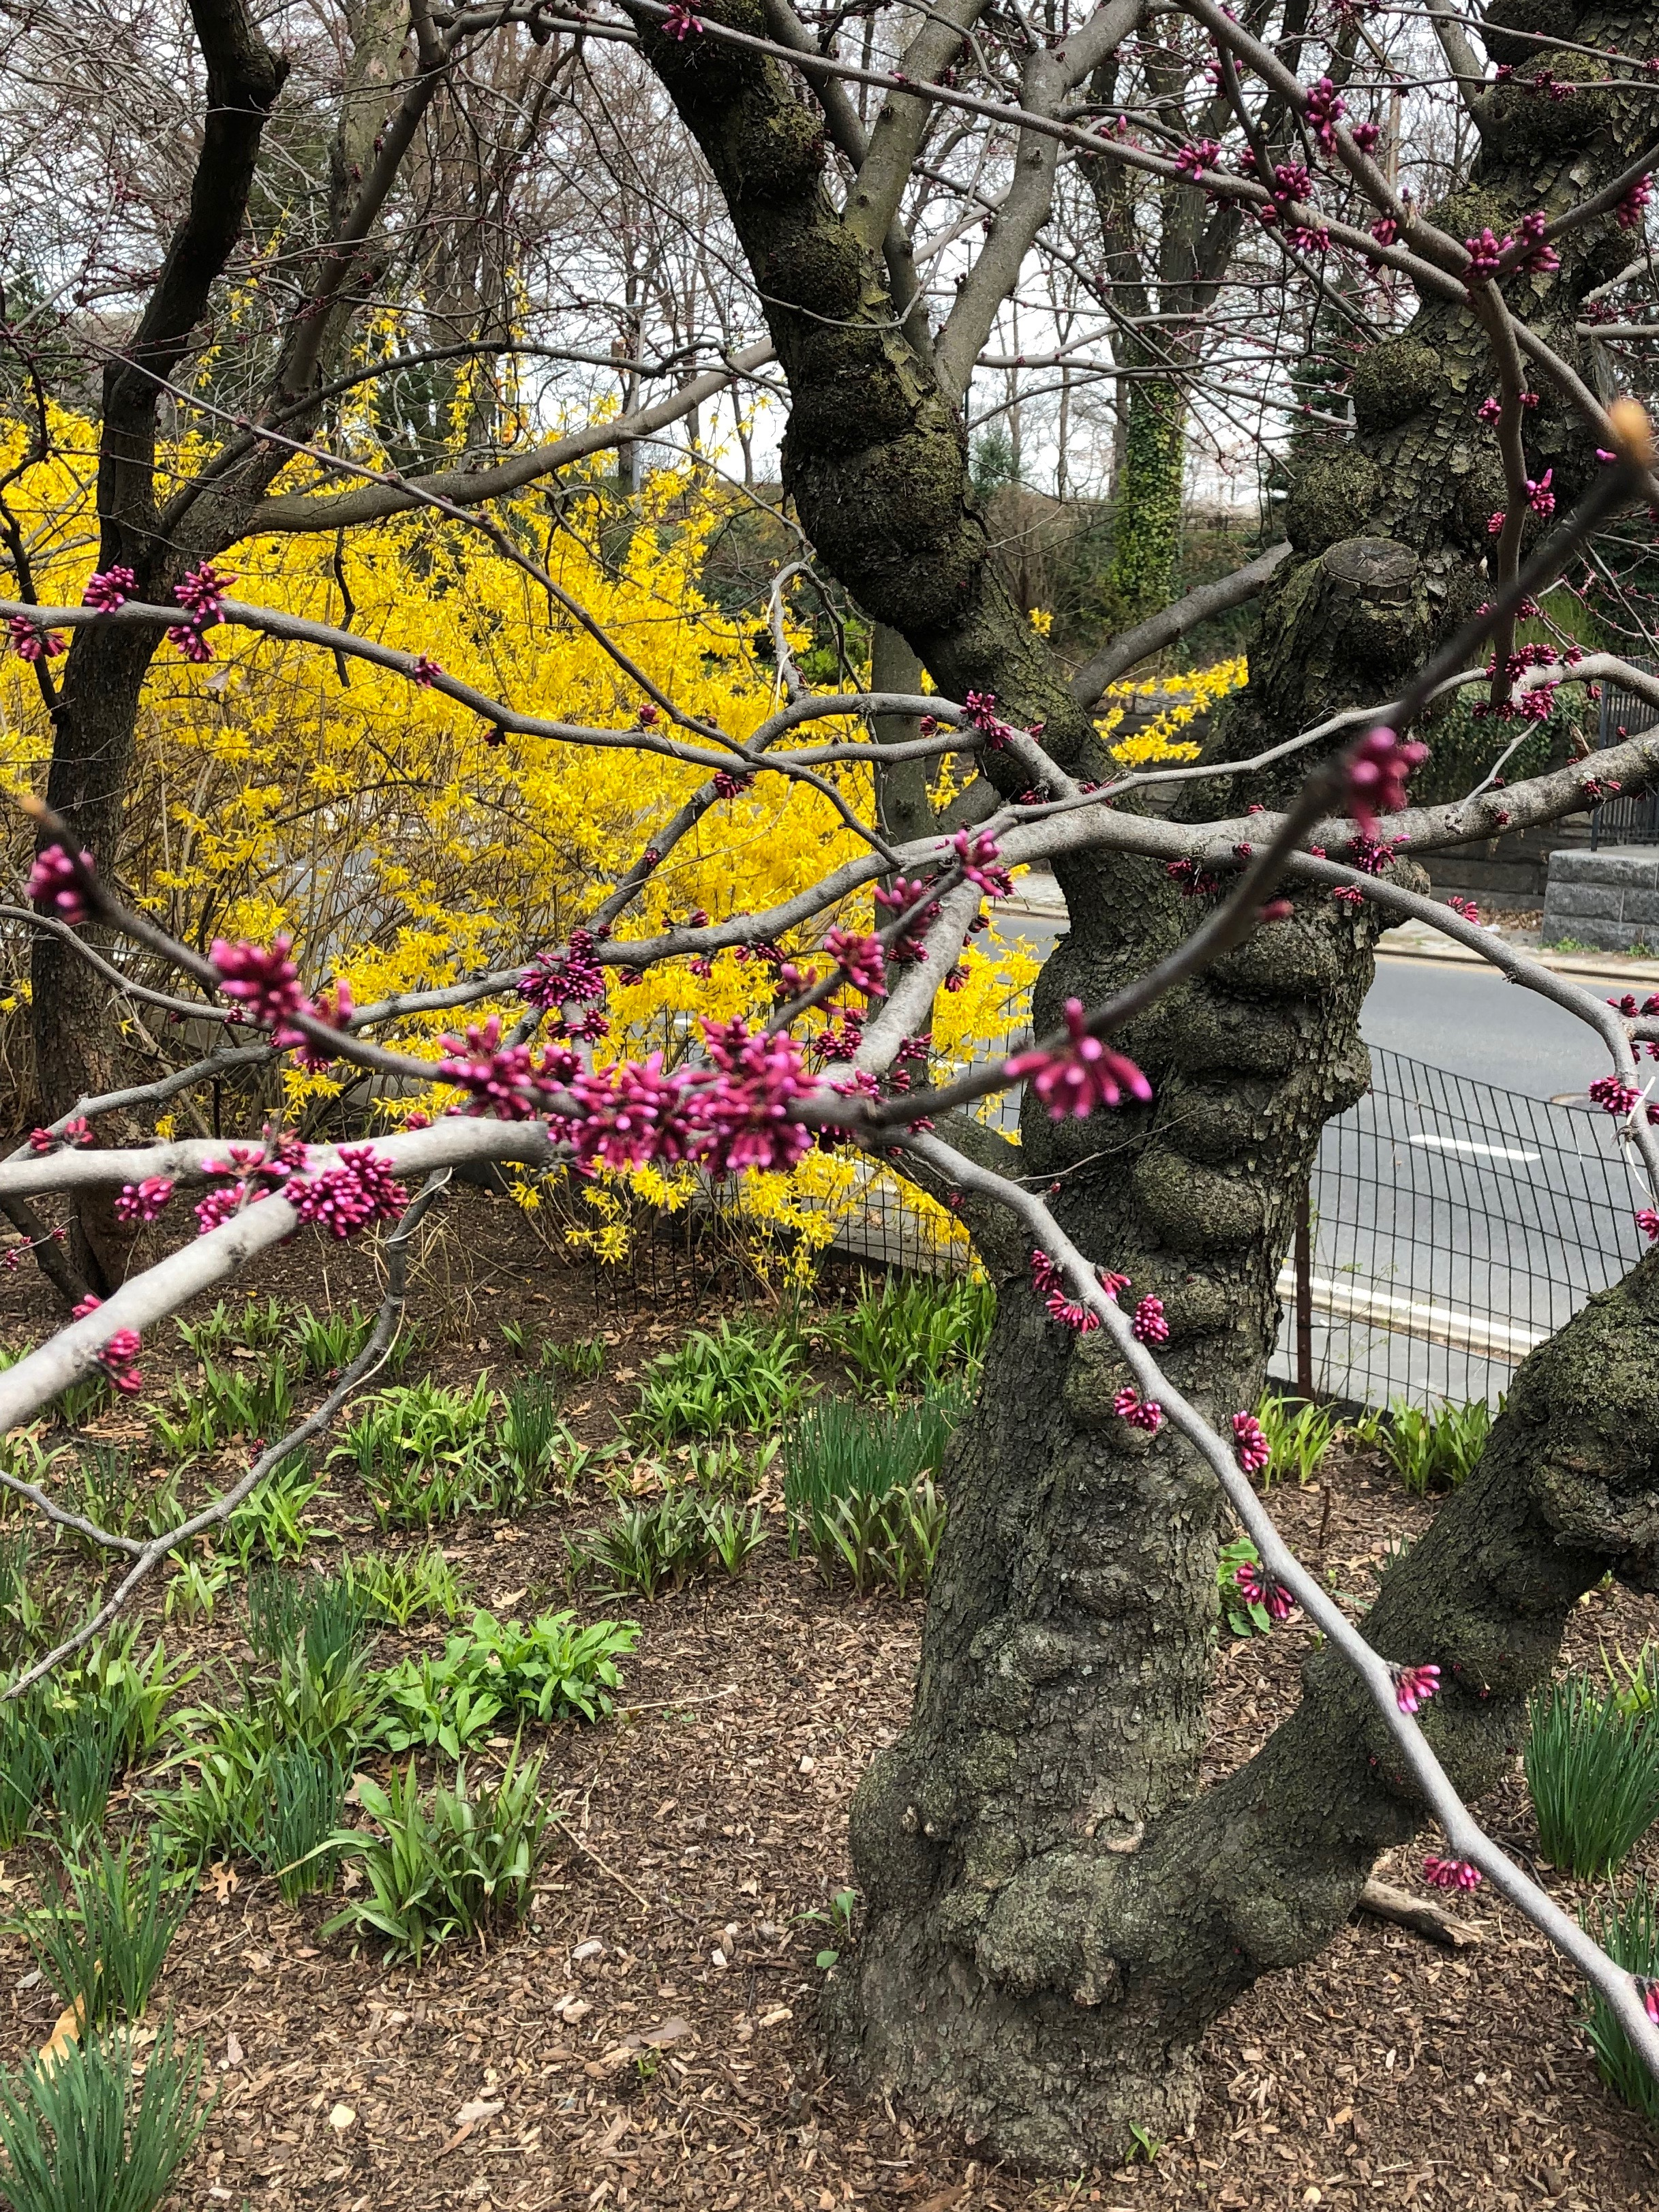 041219-red-bud-and-forsythia